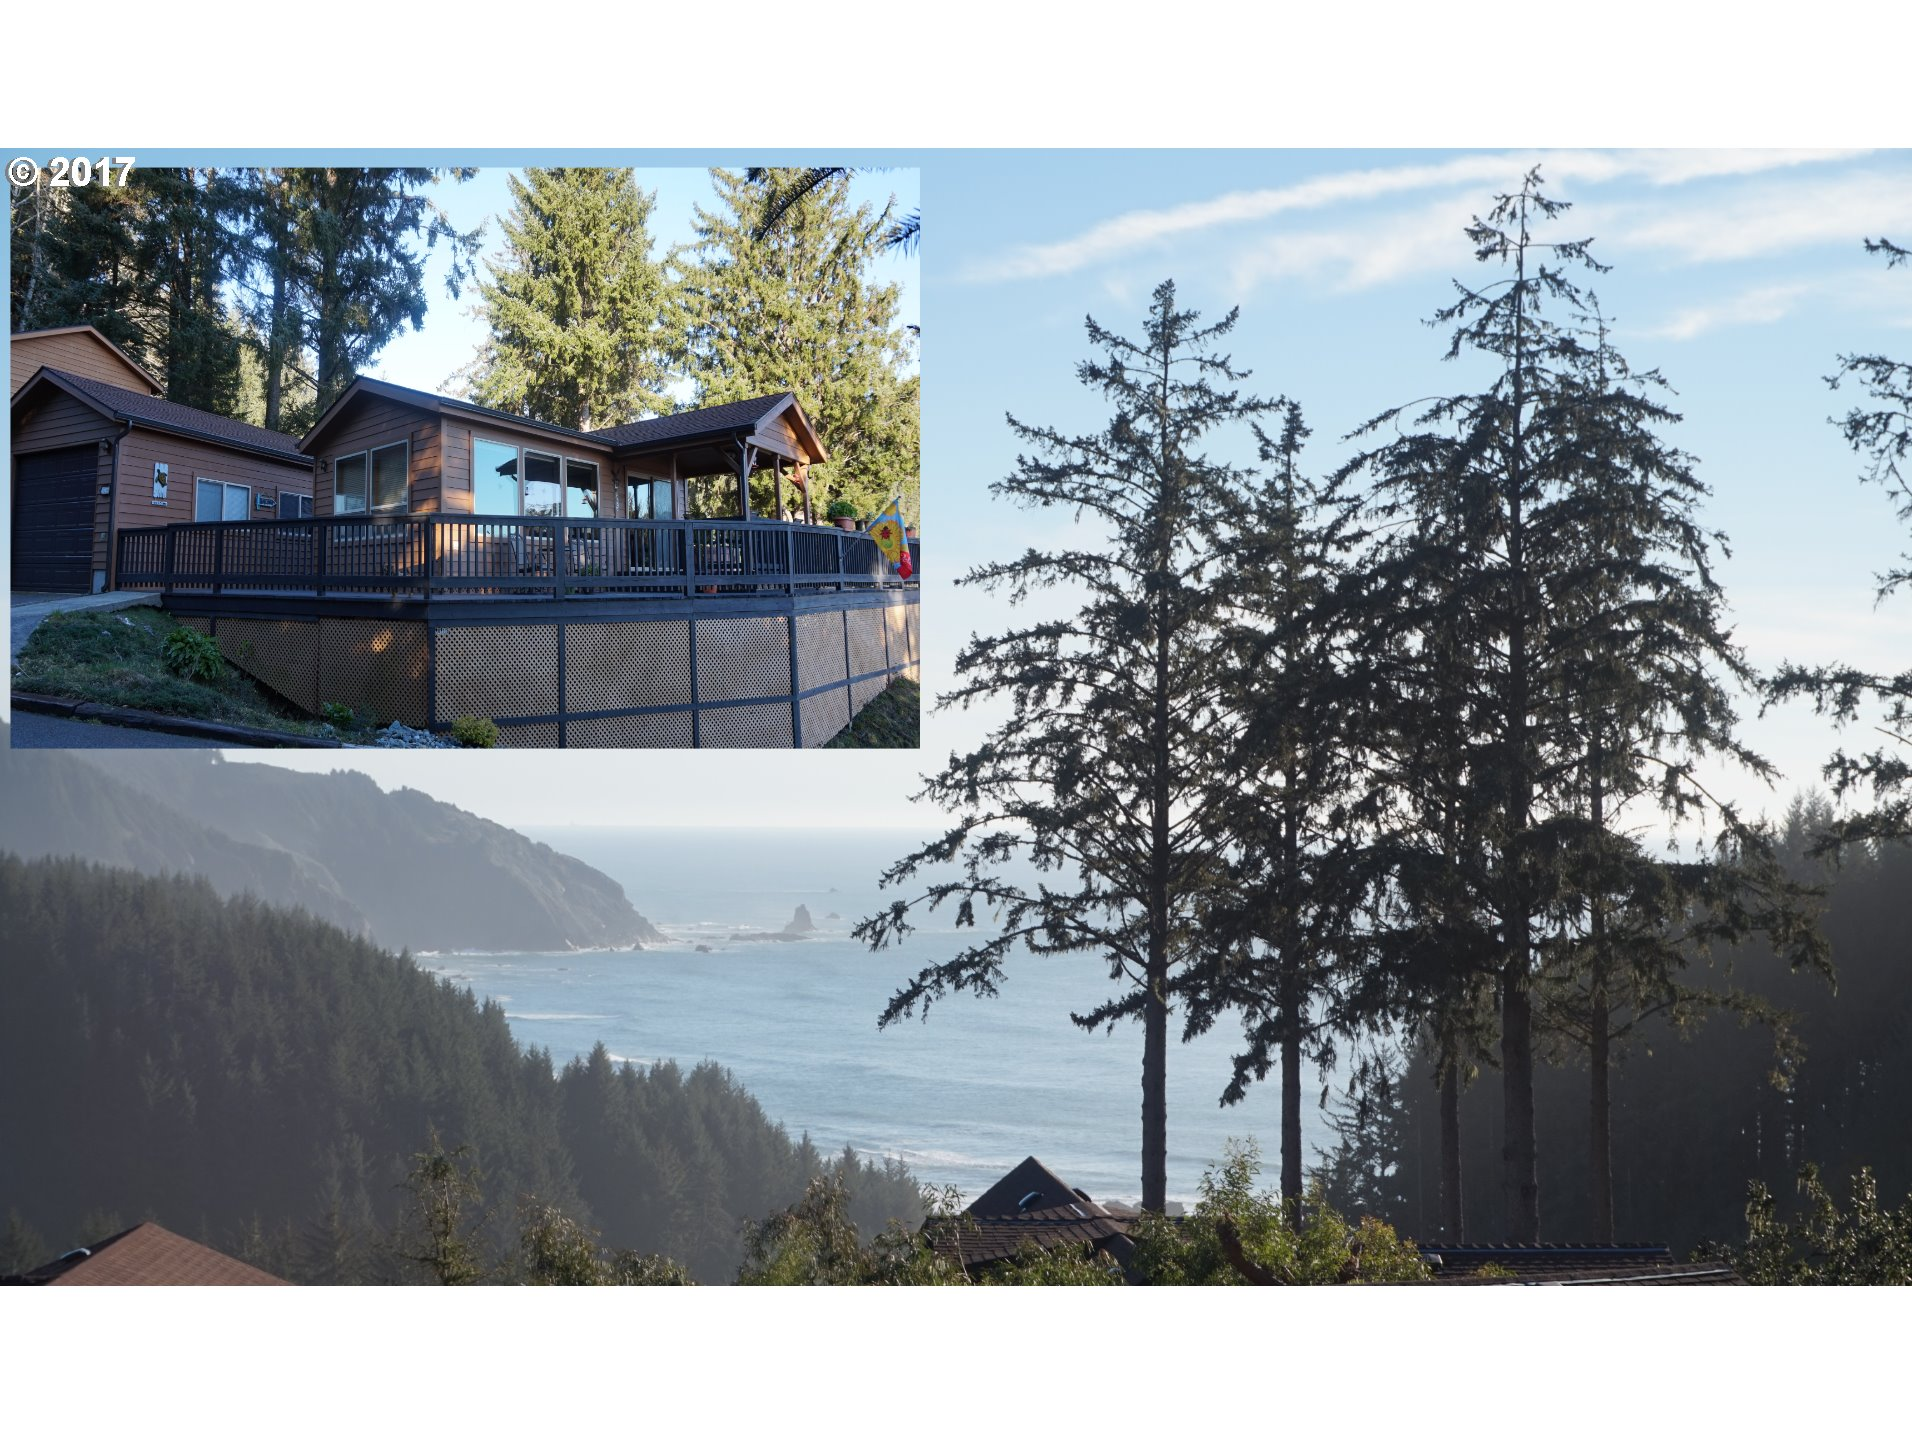 Brookings, OR 1 Bedroom Home For Sale